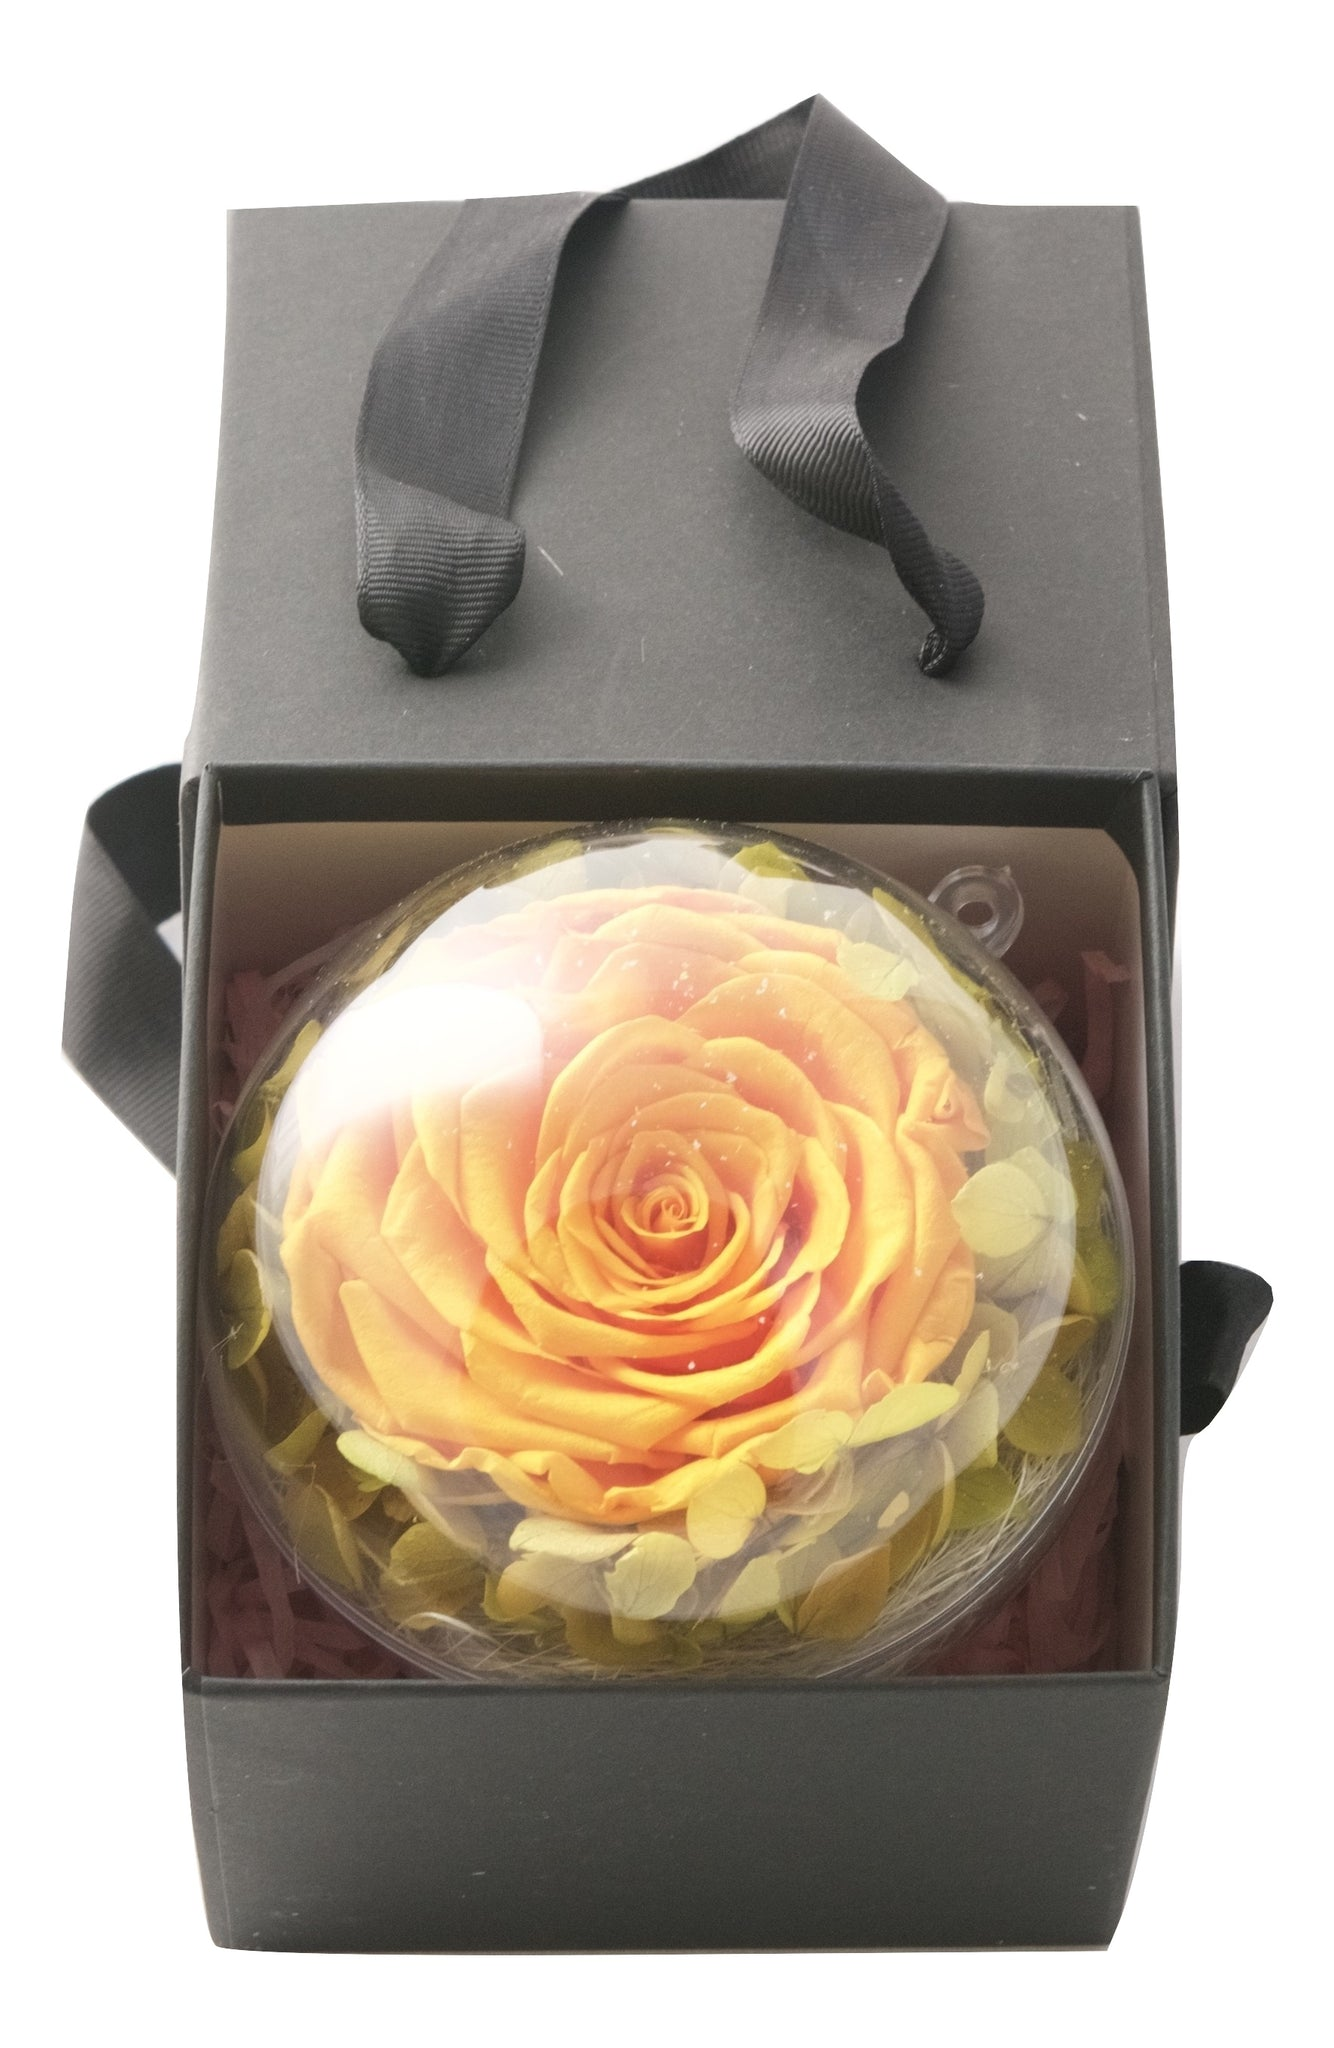 Rose Bauble - flower in a box